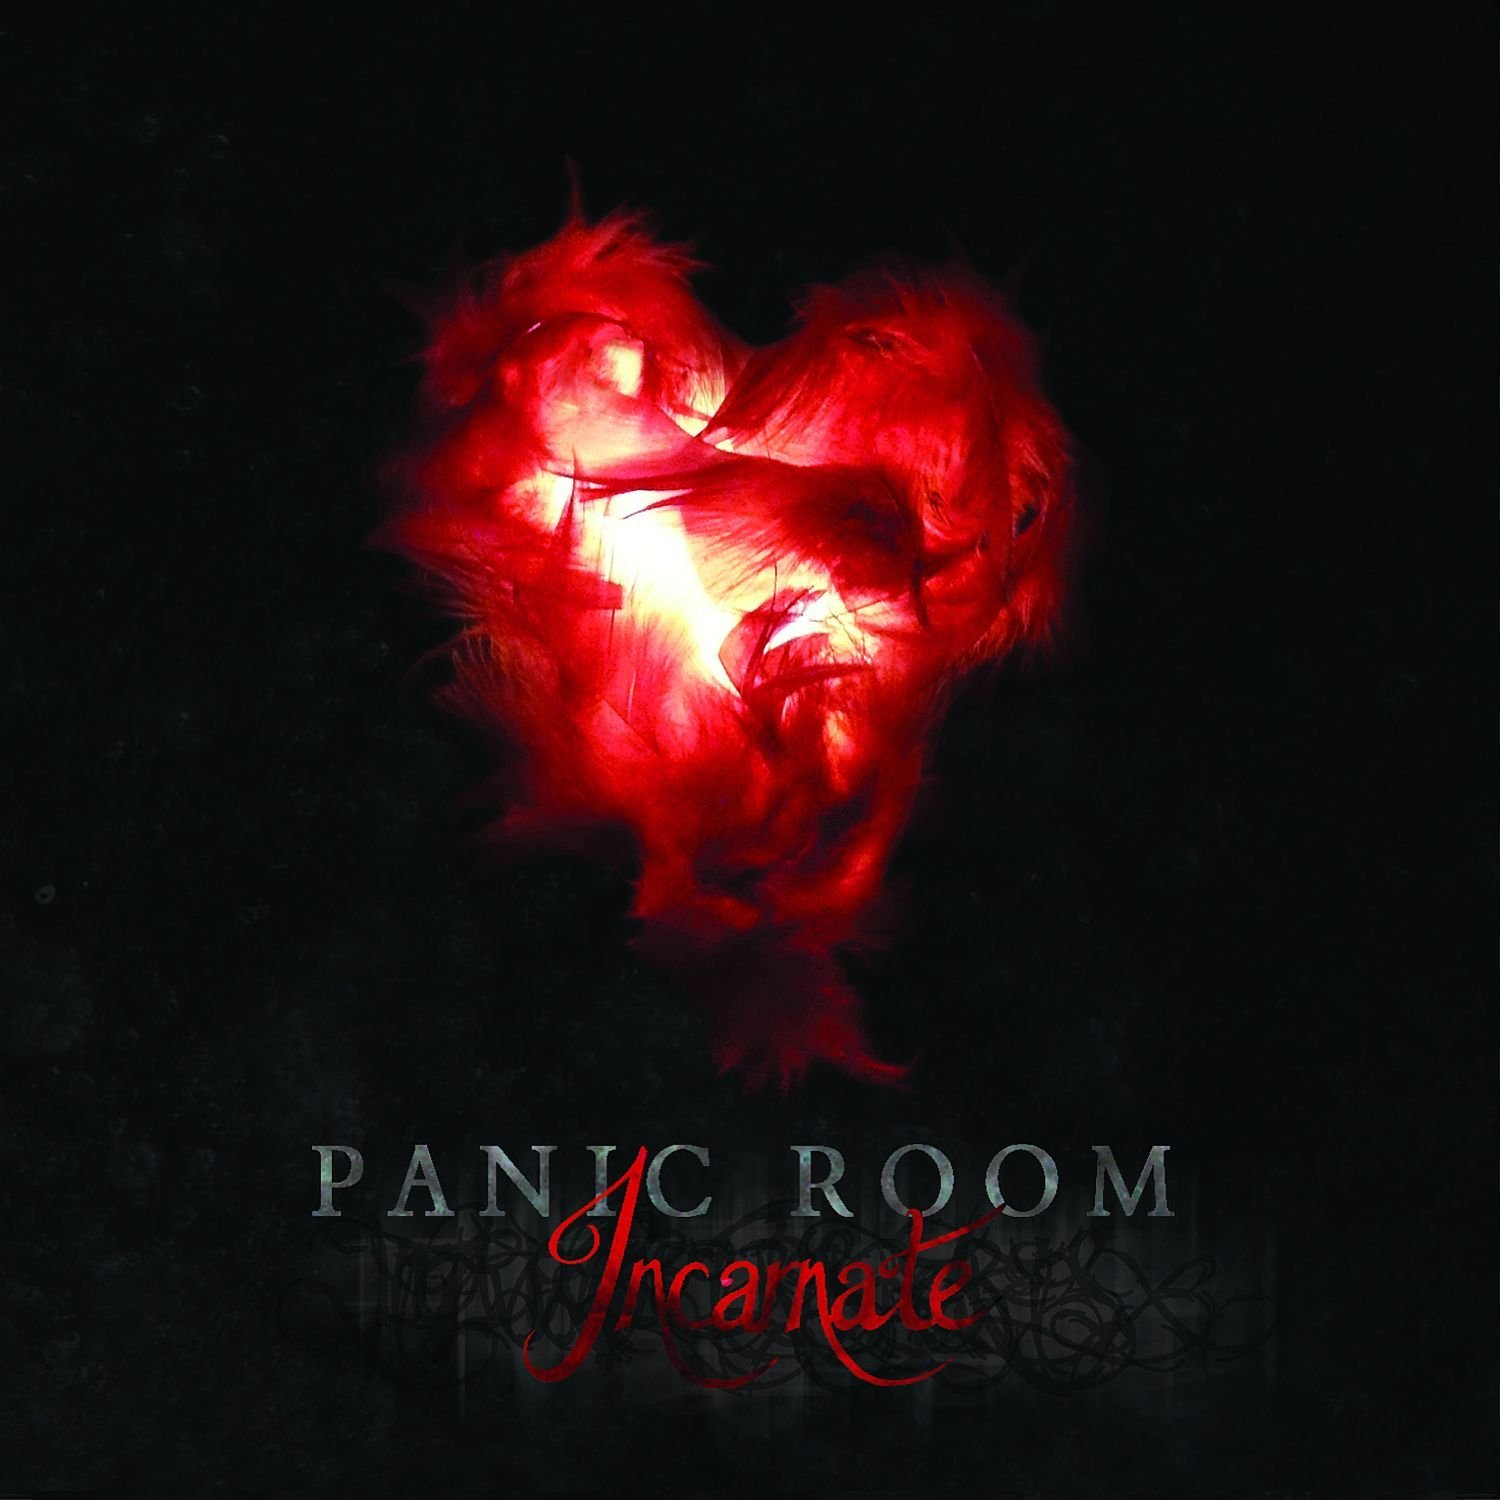 PANIC ROOM - Incarnate CD album cover